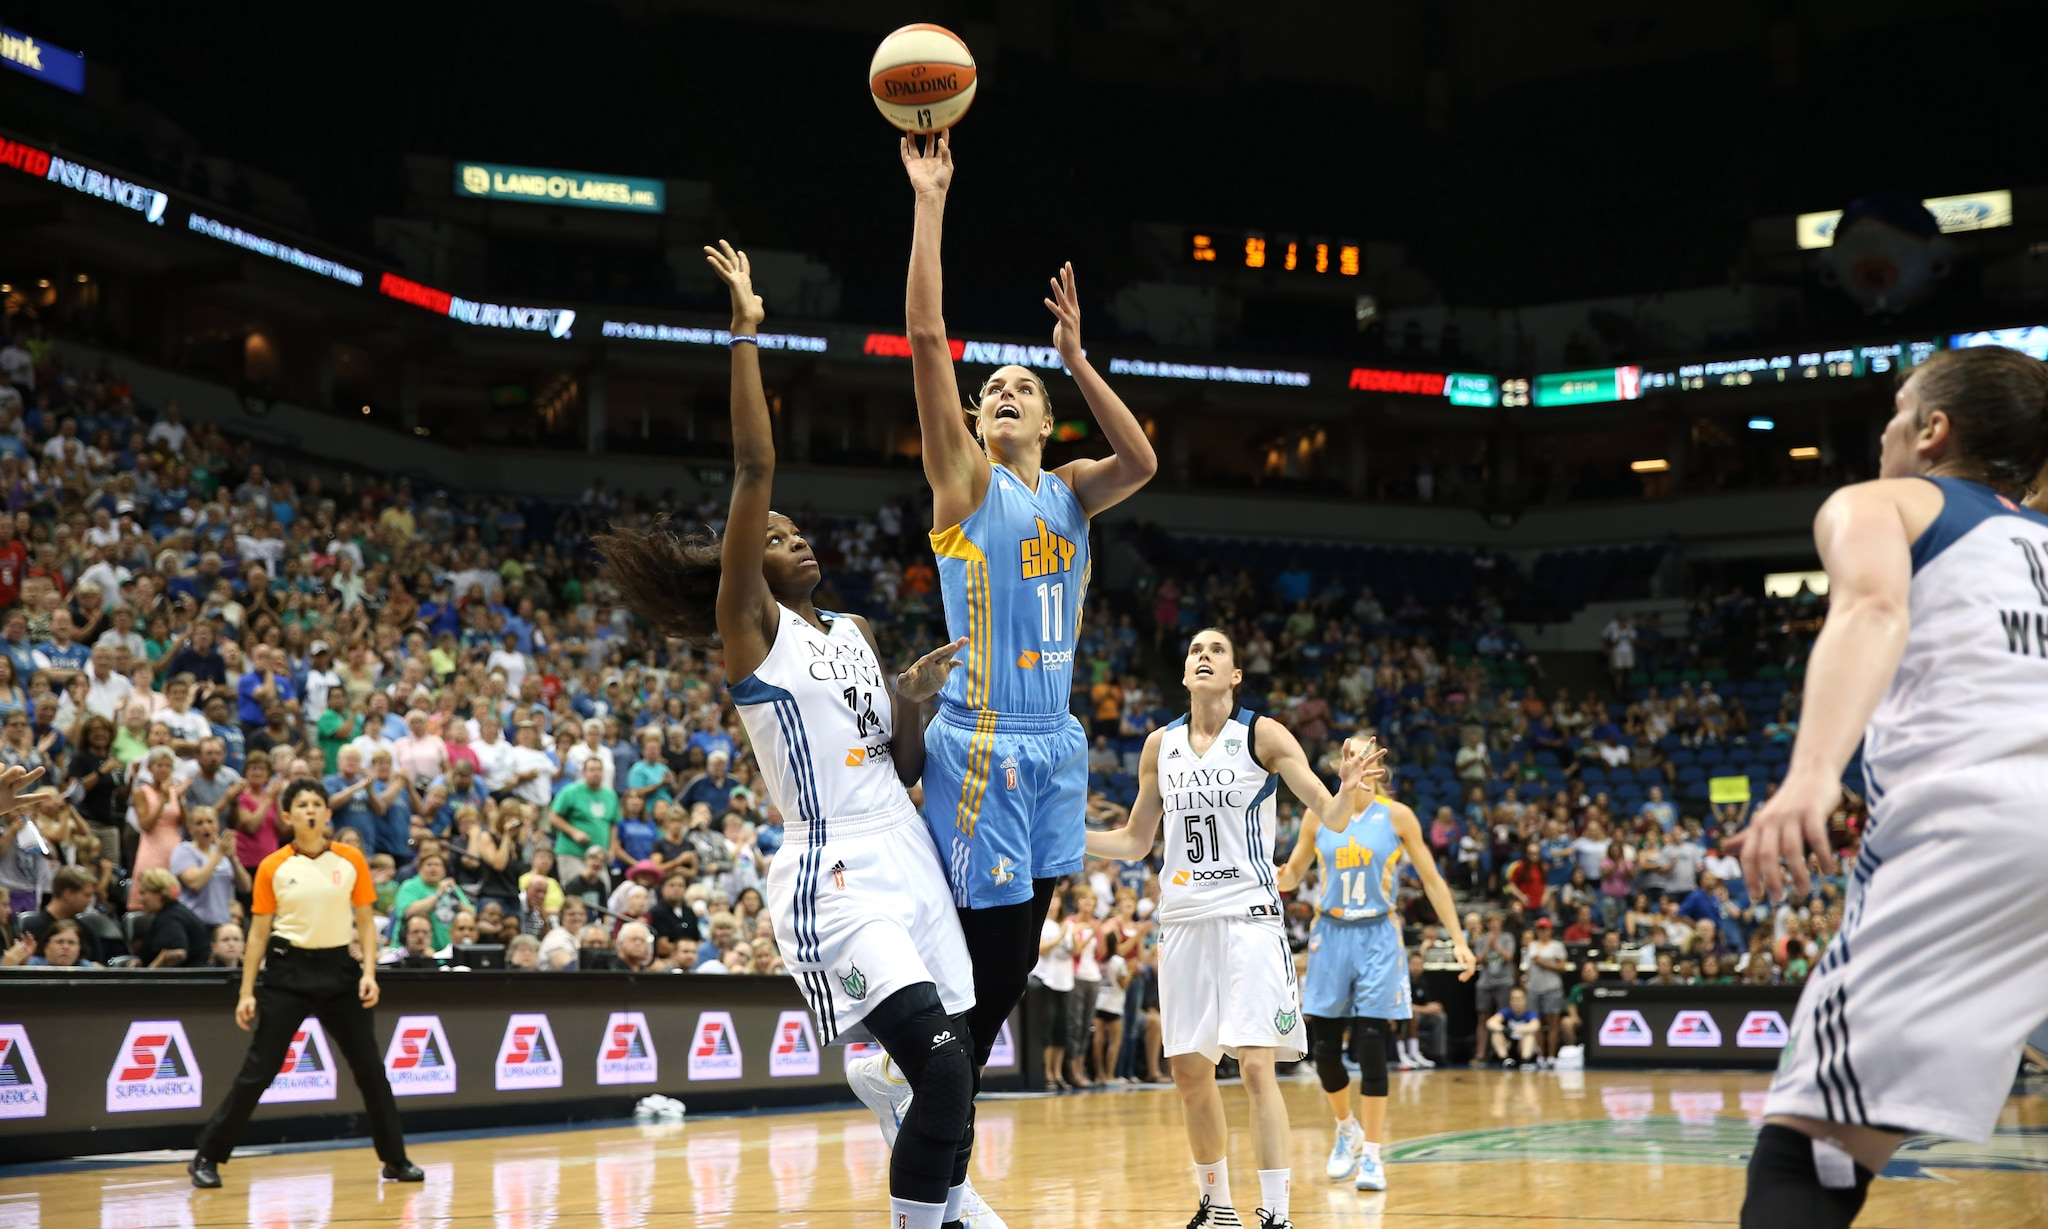 Sky forward Ella Delle Donne is the league's leading scorer, but was held in-check by an impressive defensive performance by Lynx forward Rebekkah Brunson. Delle Donne finished with just 14 points and nine rebounds.